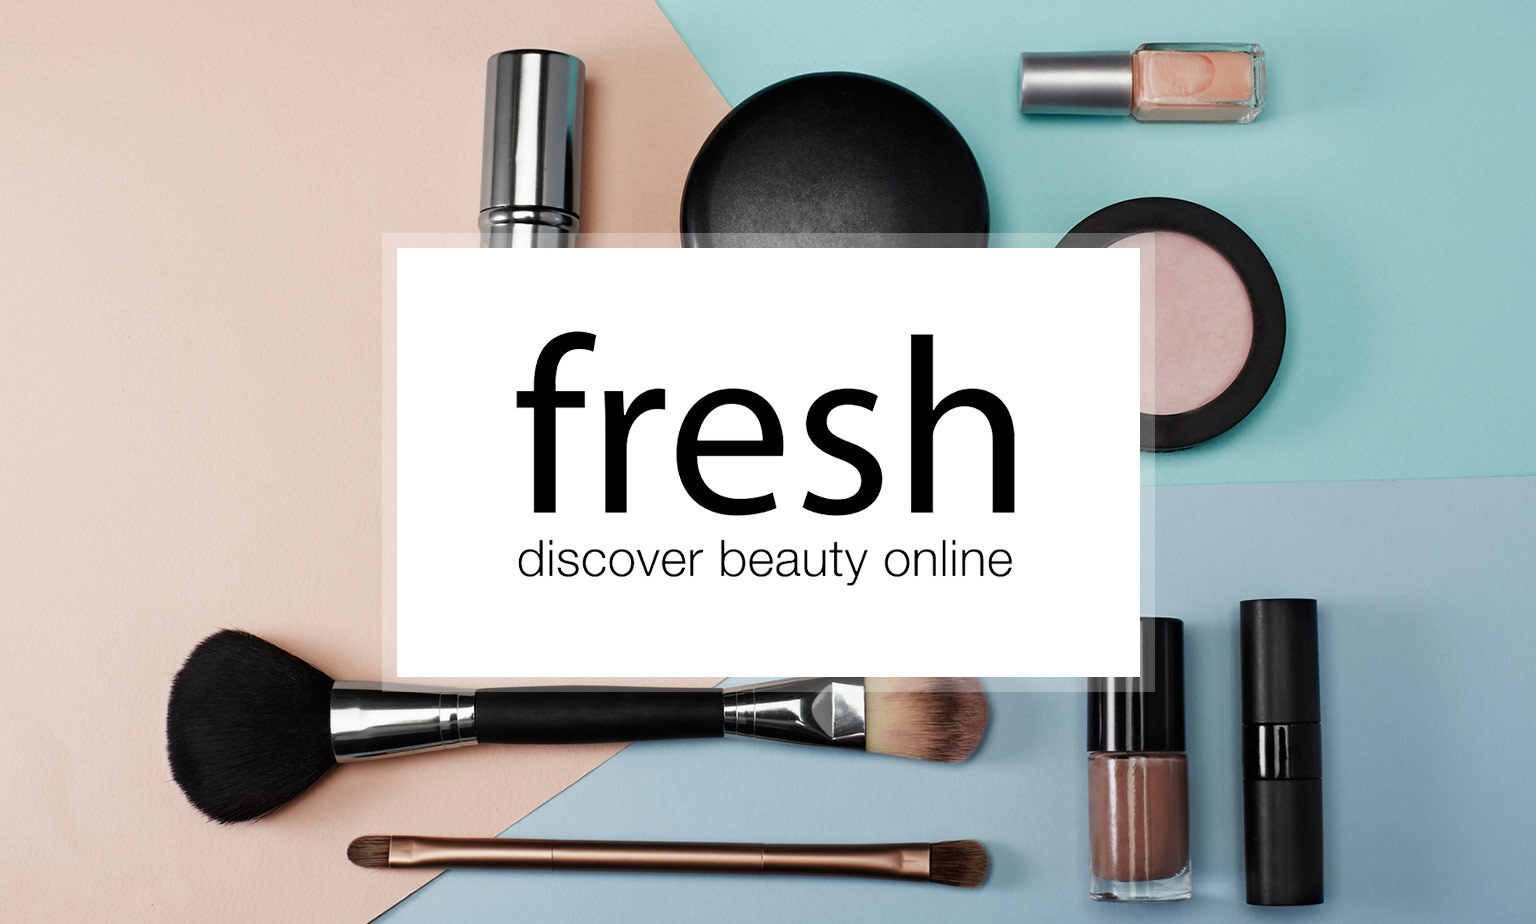 Up to 50% off selected skin care, make up, fragrance and hair care